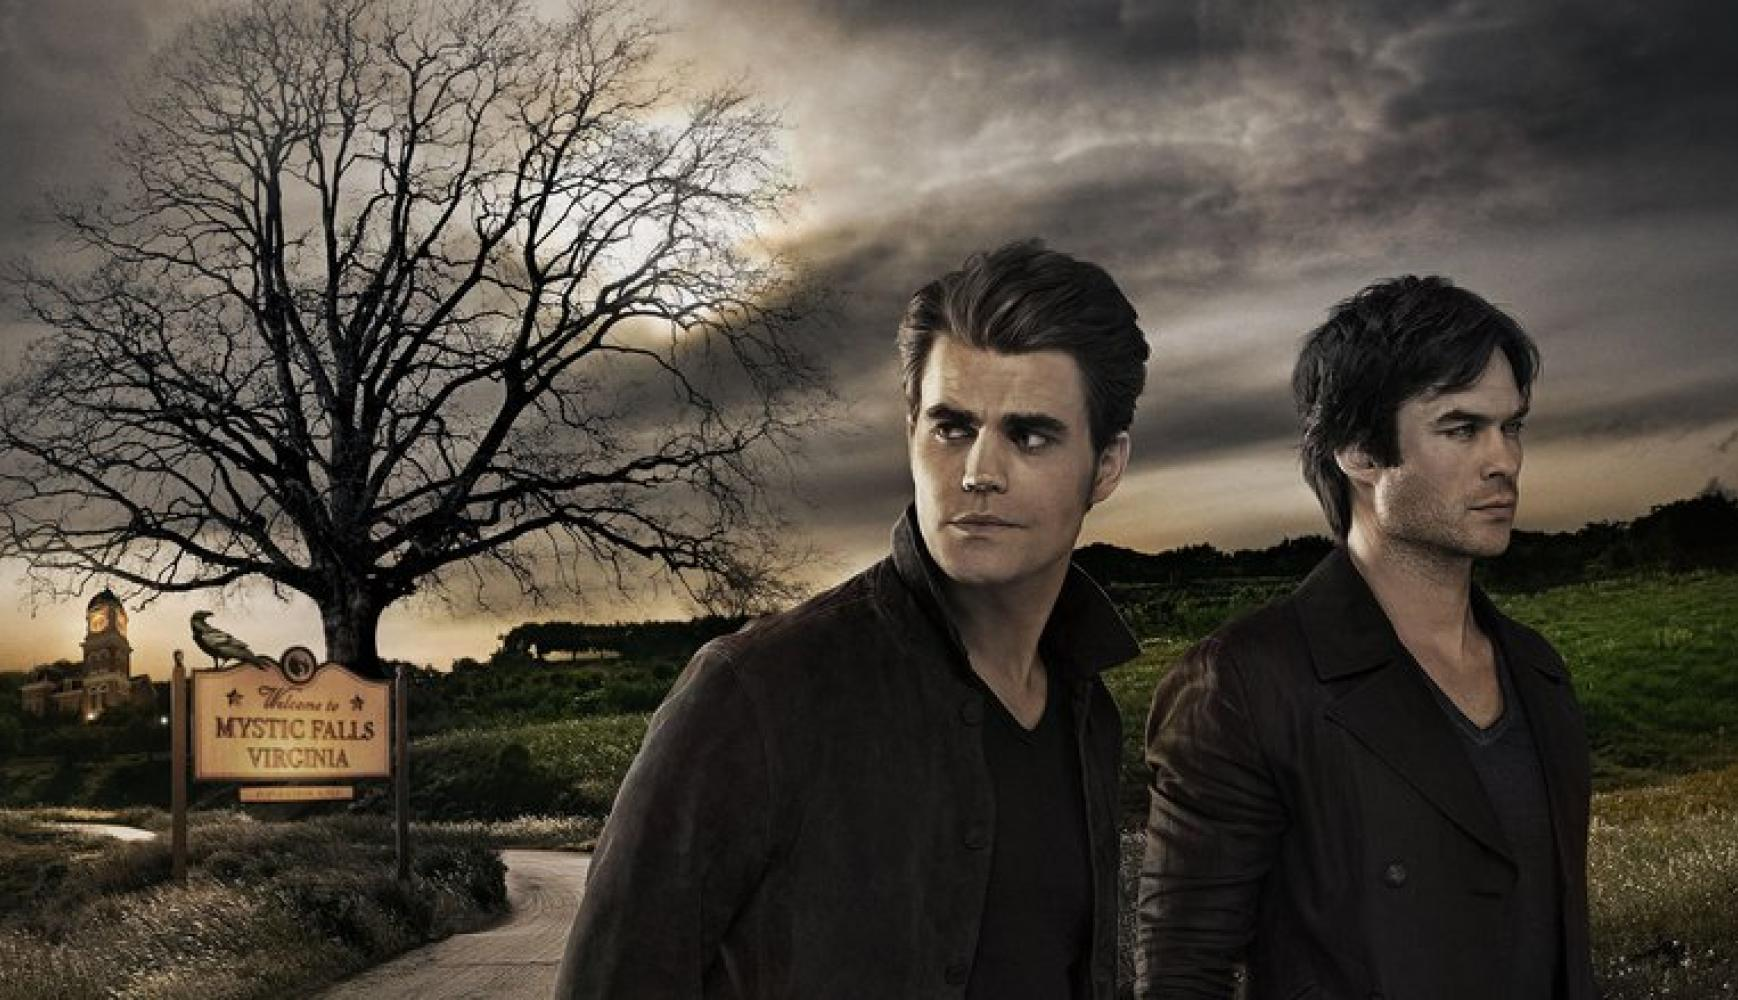 The Vampire Diaries Season 7 Episode 5